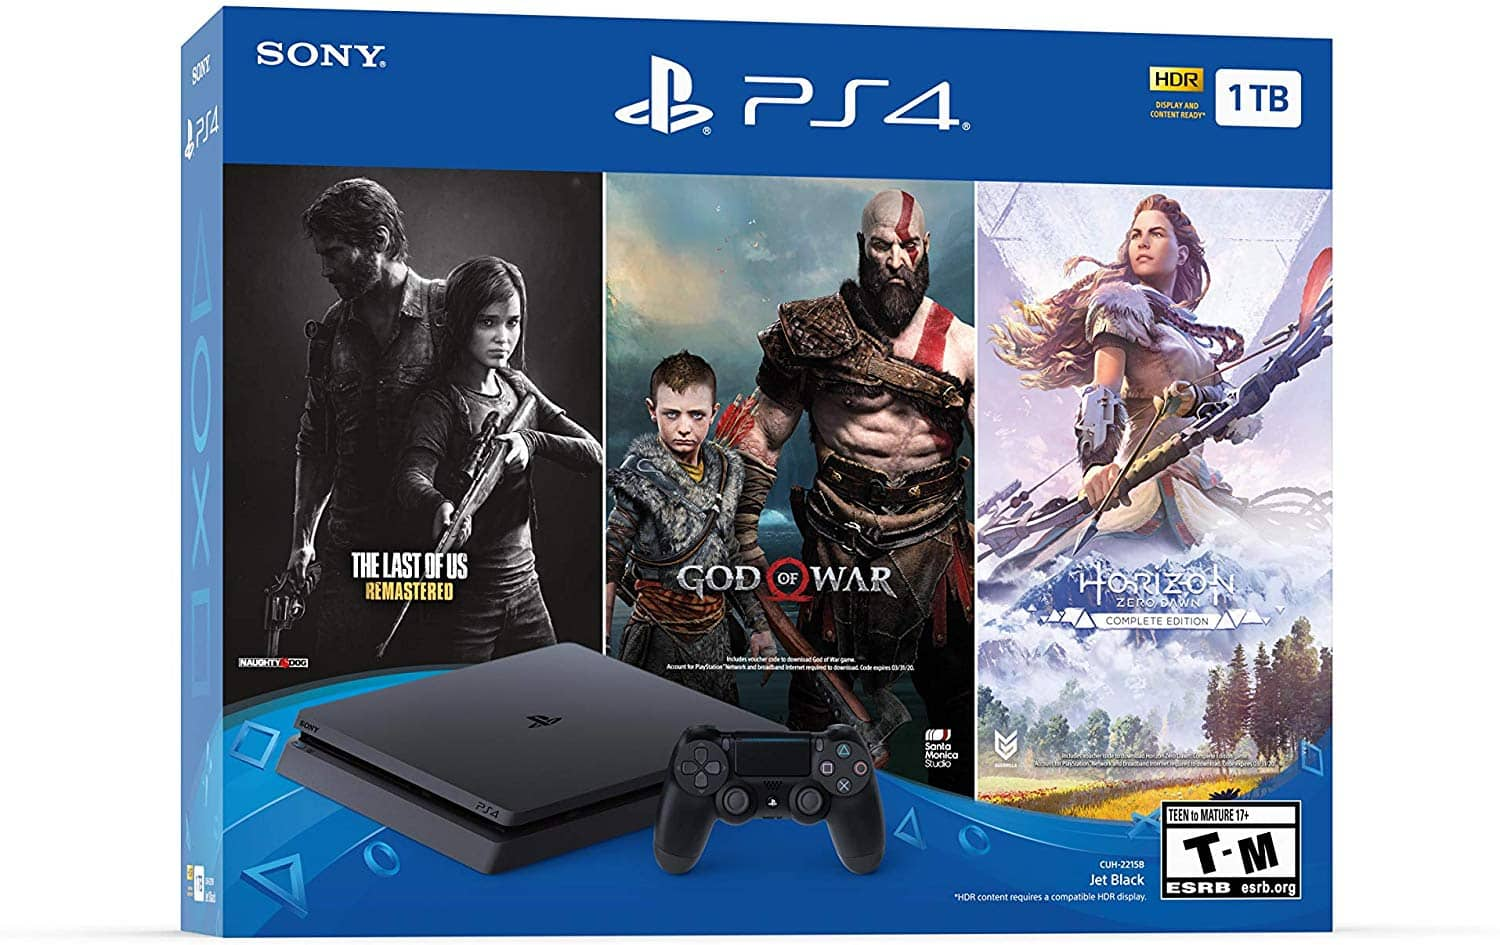 (B&H) Sony PS4 4  The Last of Us: Remastered, God of War & Horizon Zero Dawn: Complete Edition $200 + free s/h